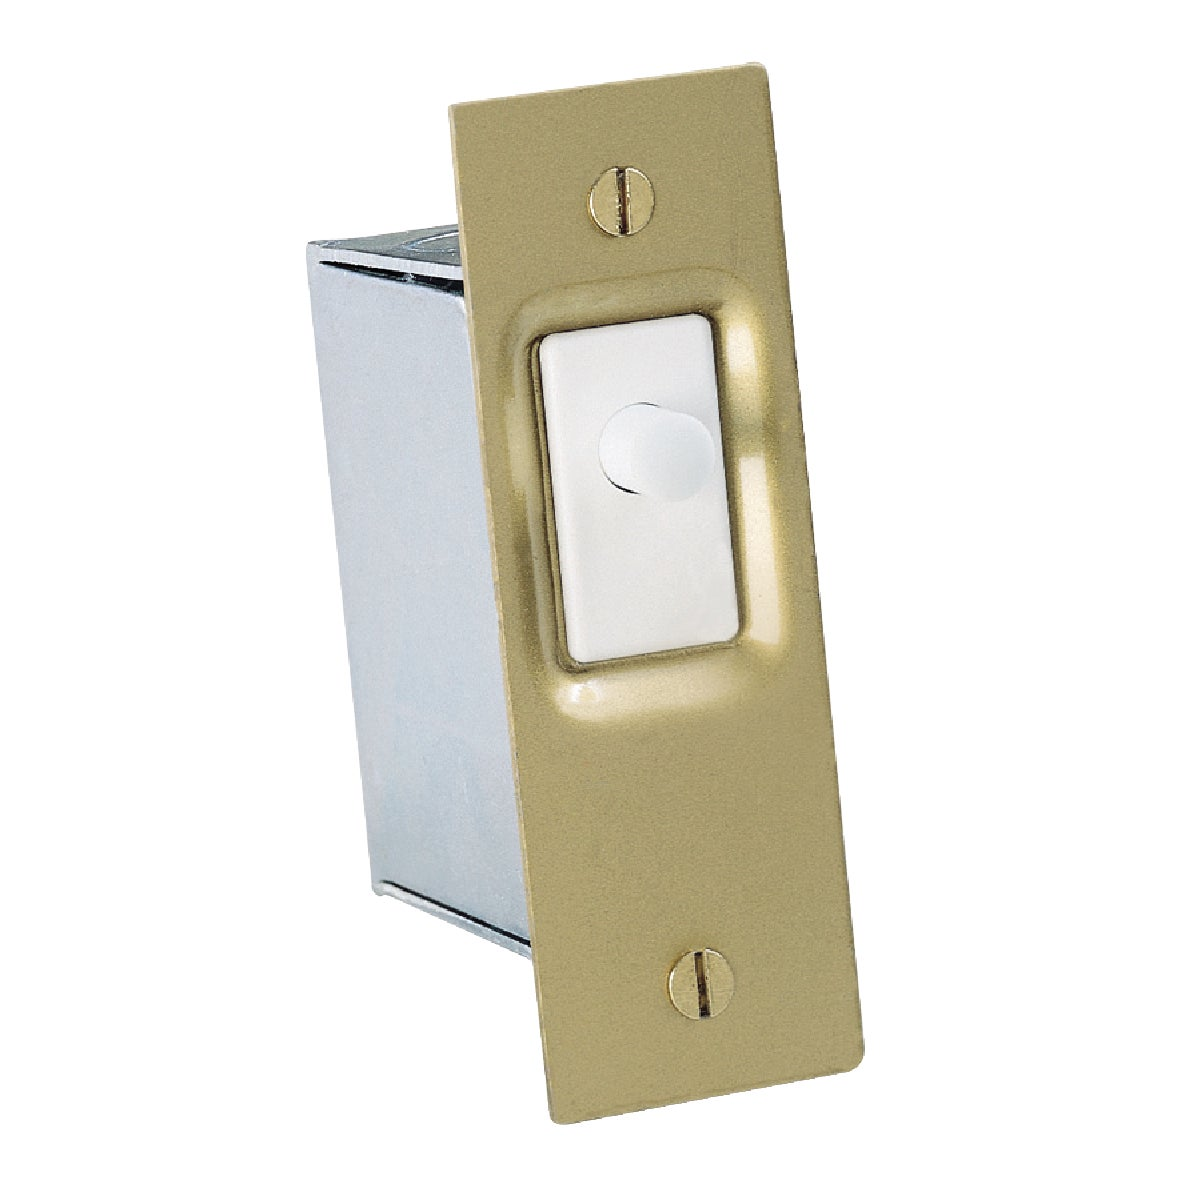 DOOR JAMB SWITCH - GSW-SK by G B Electrical Inc